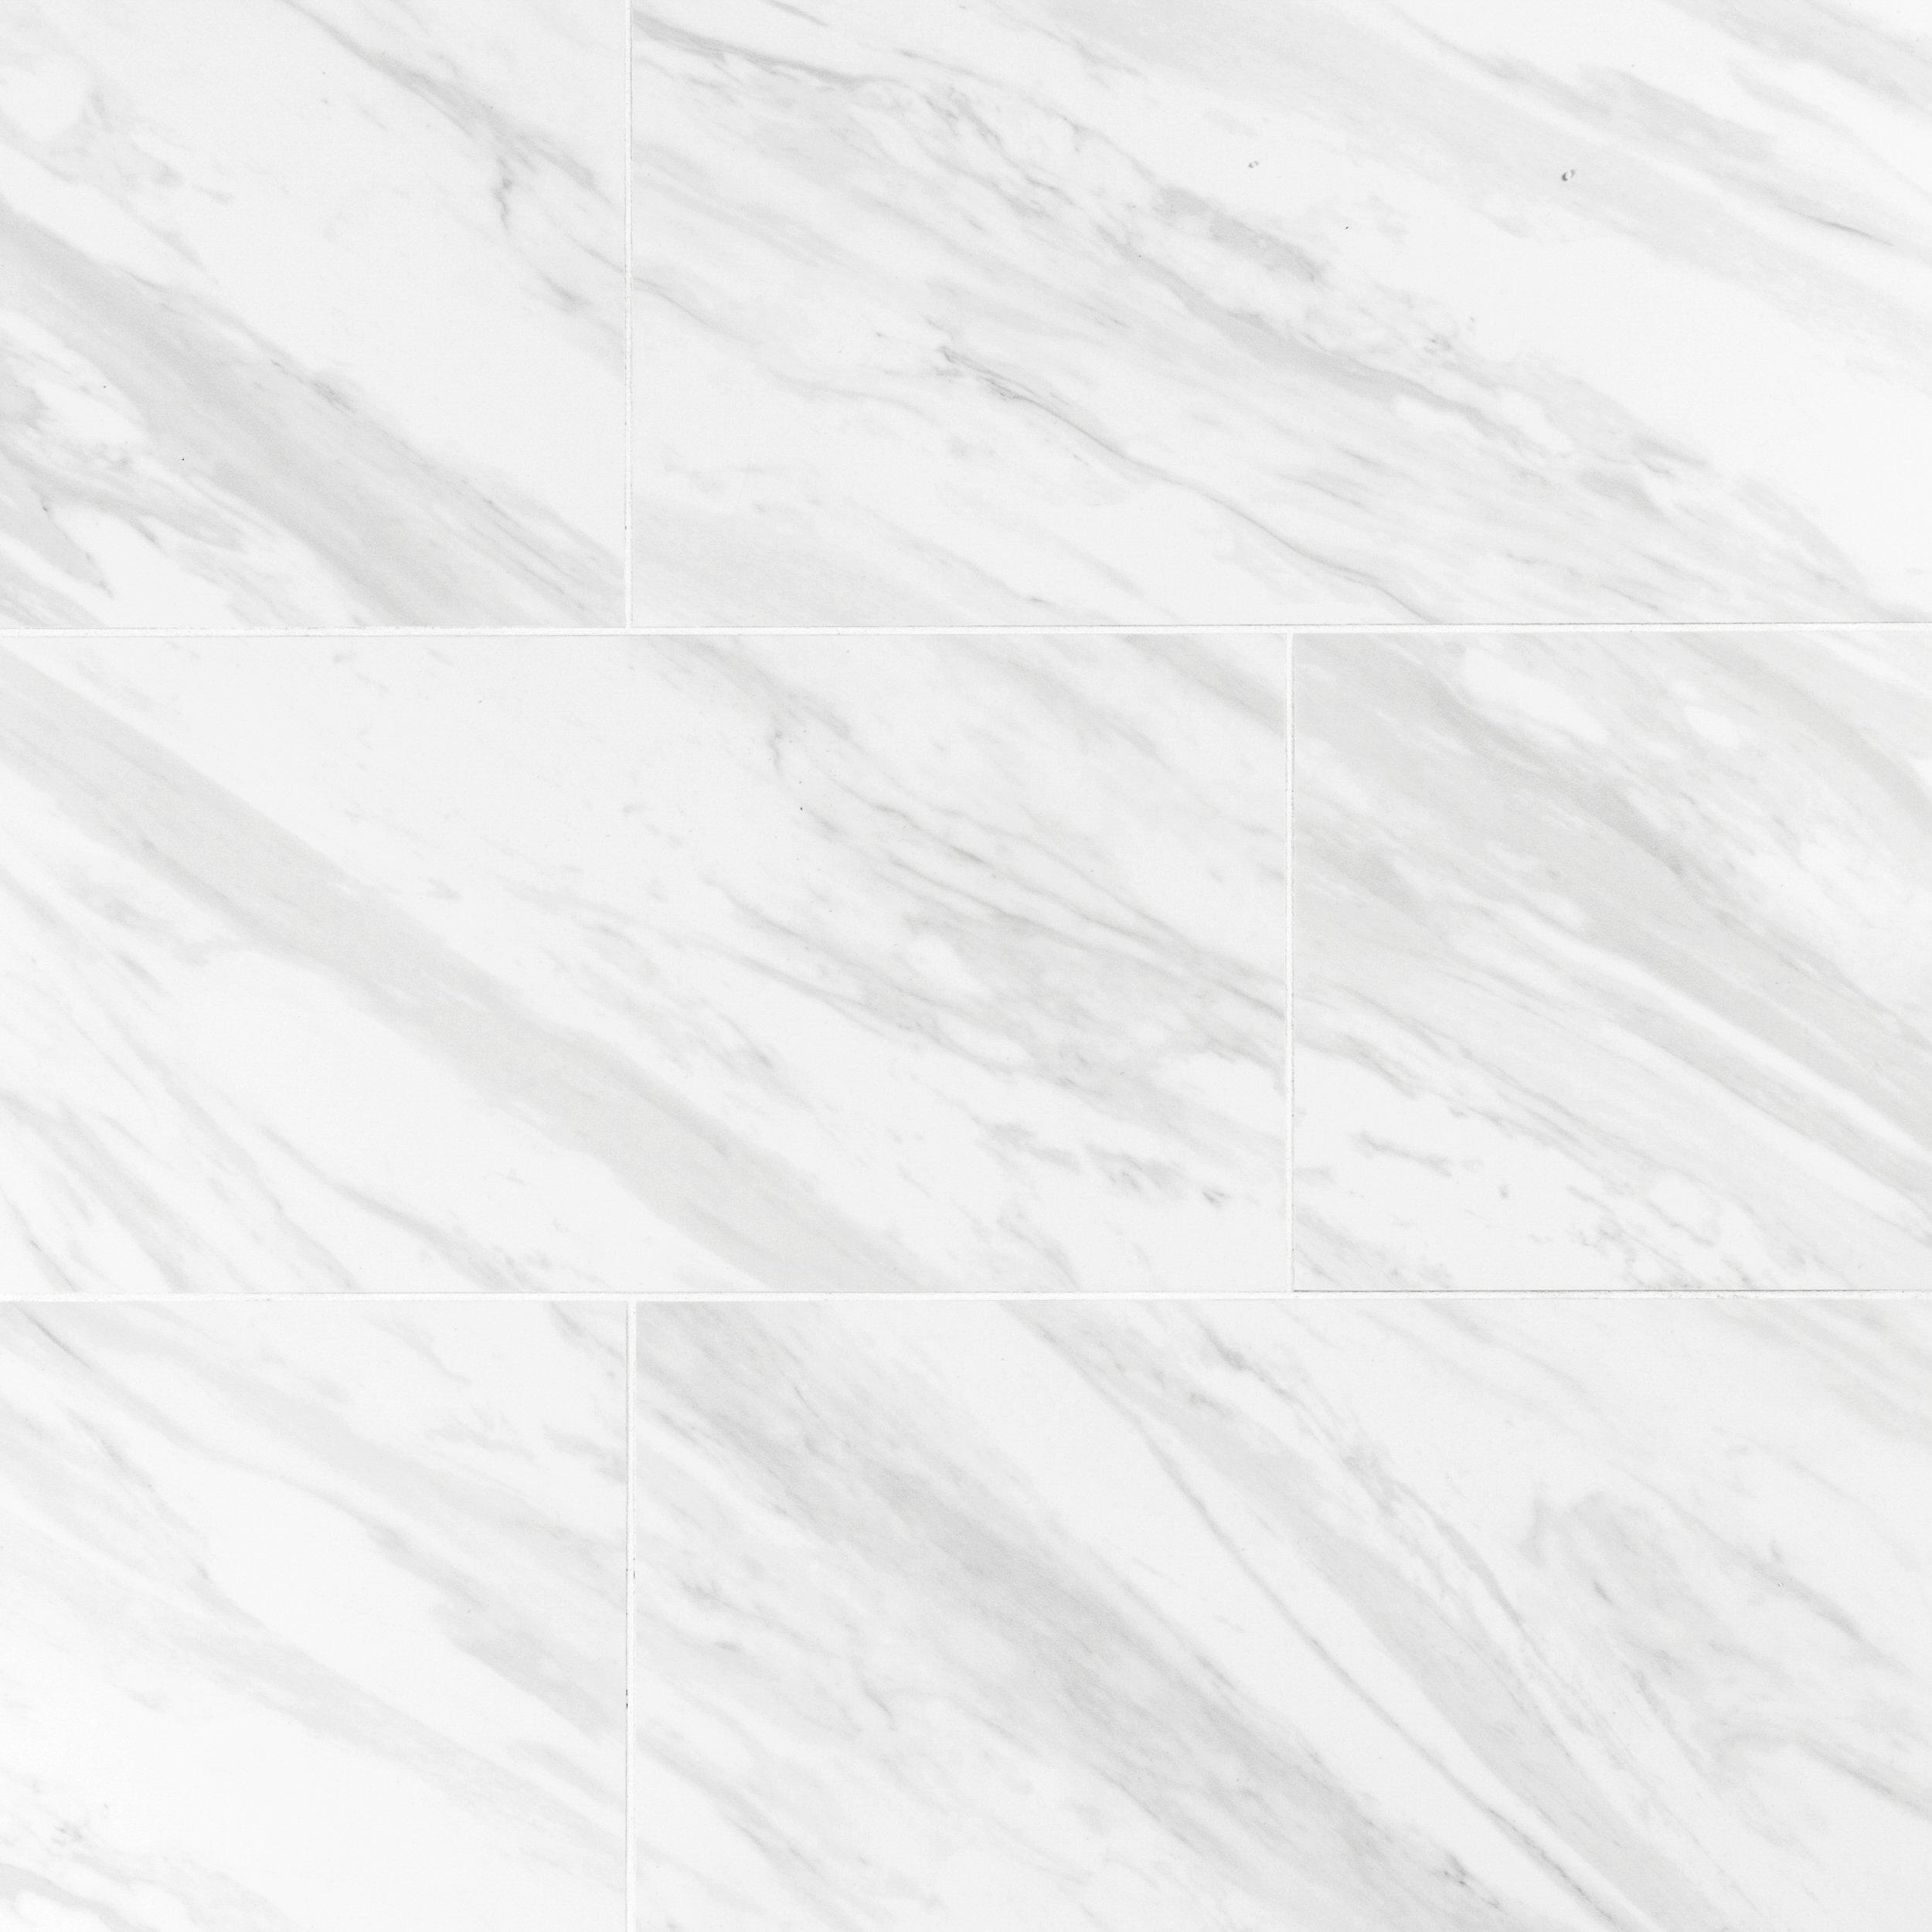 White porcelain tile tiles white arabesque tile mesmerizing primary difference between porcelain and ceramic tile choice dailygadgetfo Images